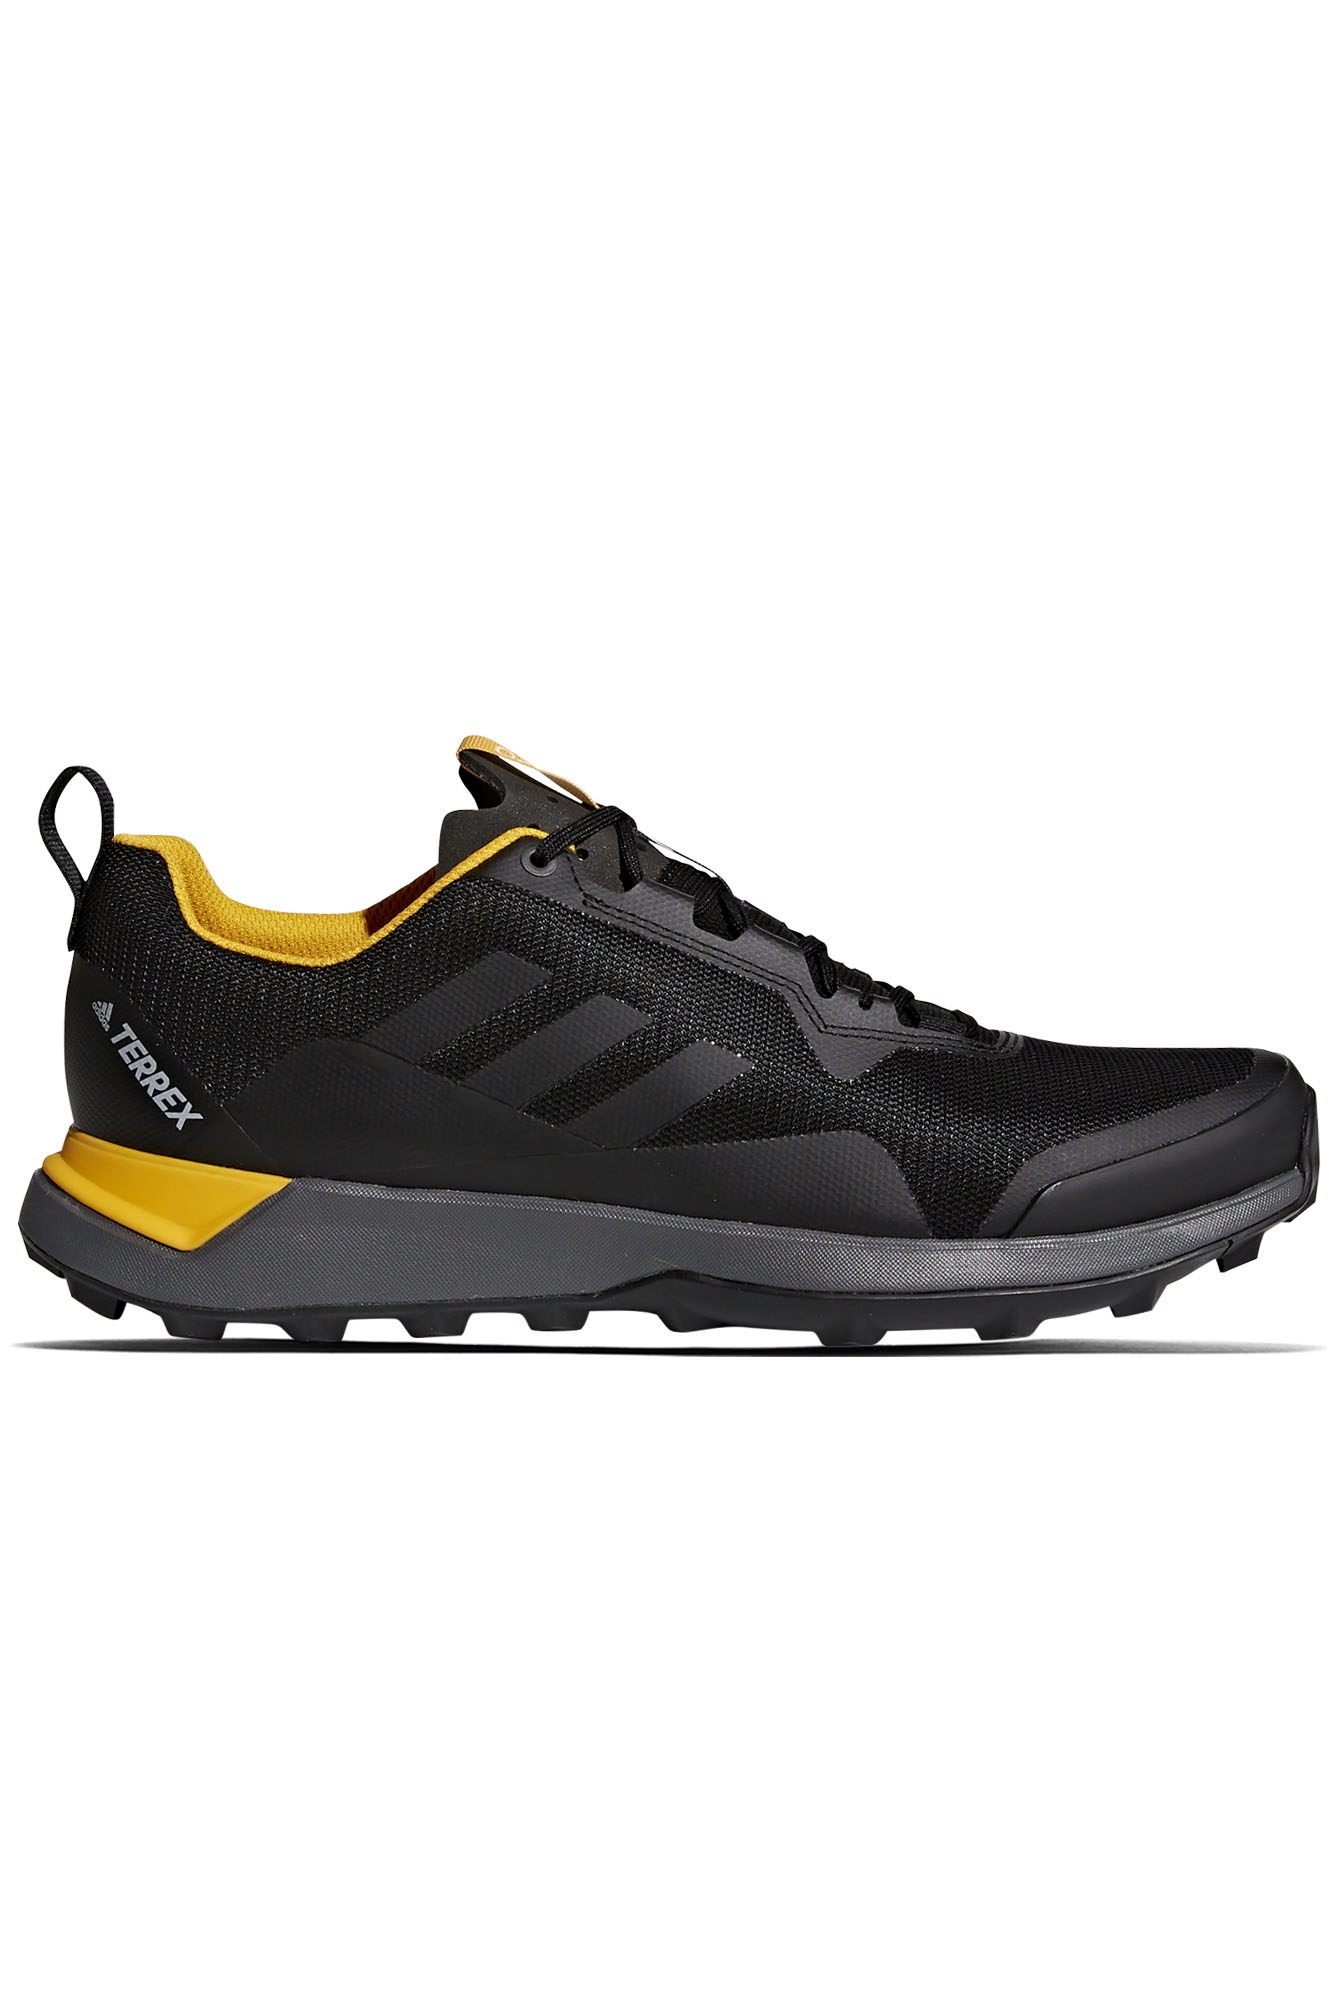 low priced f76ca 62a03 Buty adidas Terrex CMTK - S80874 ...